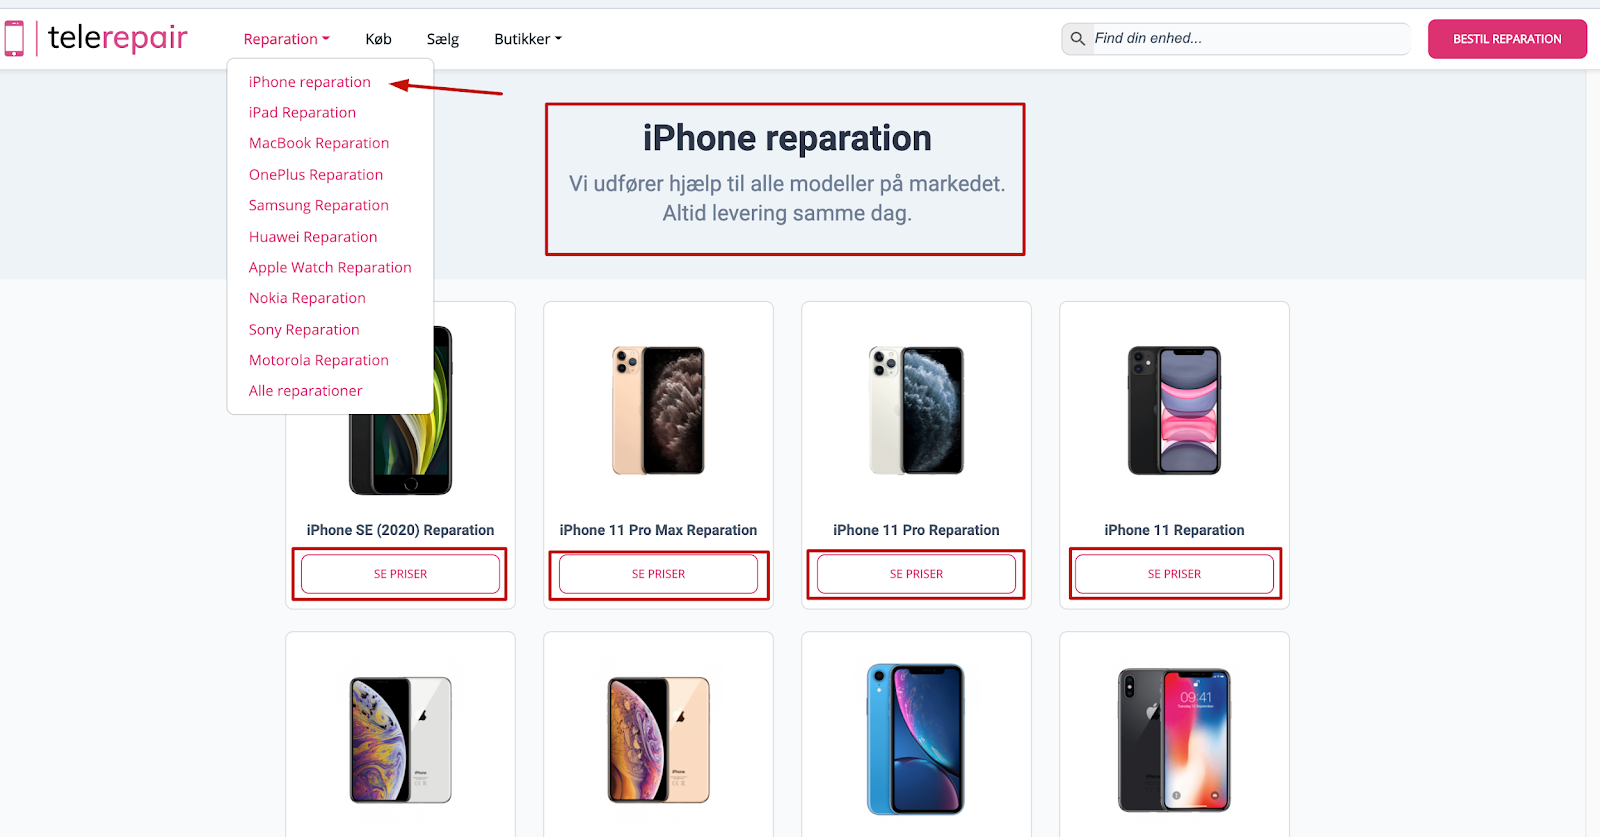 iphone reparation category page content